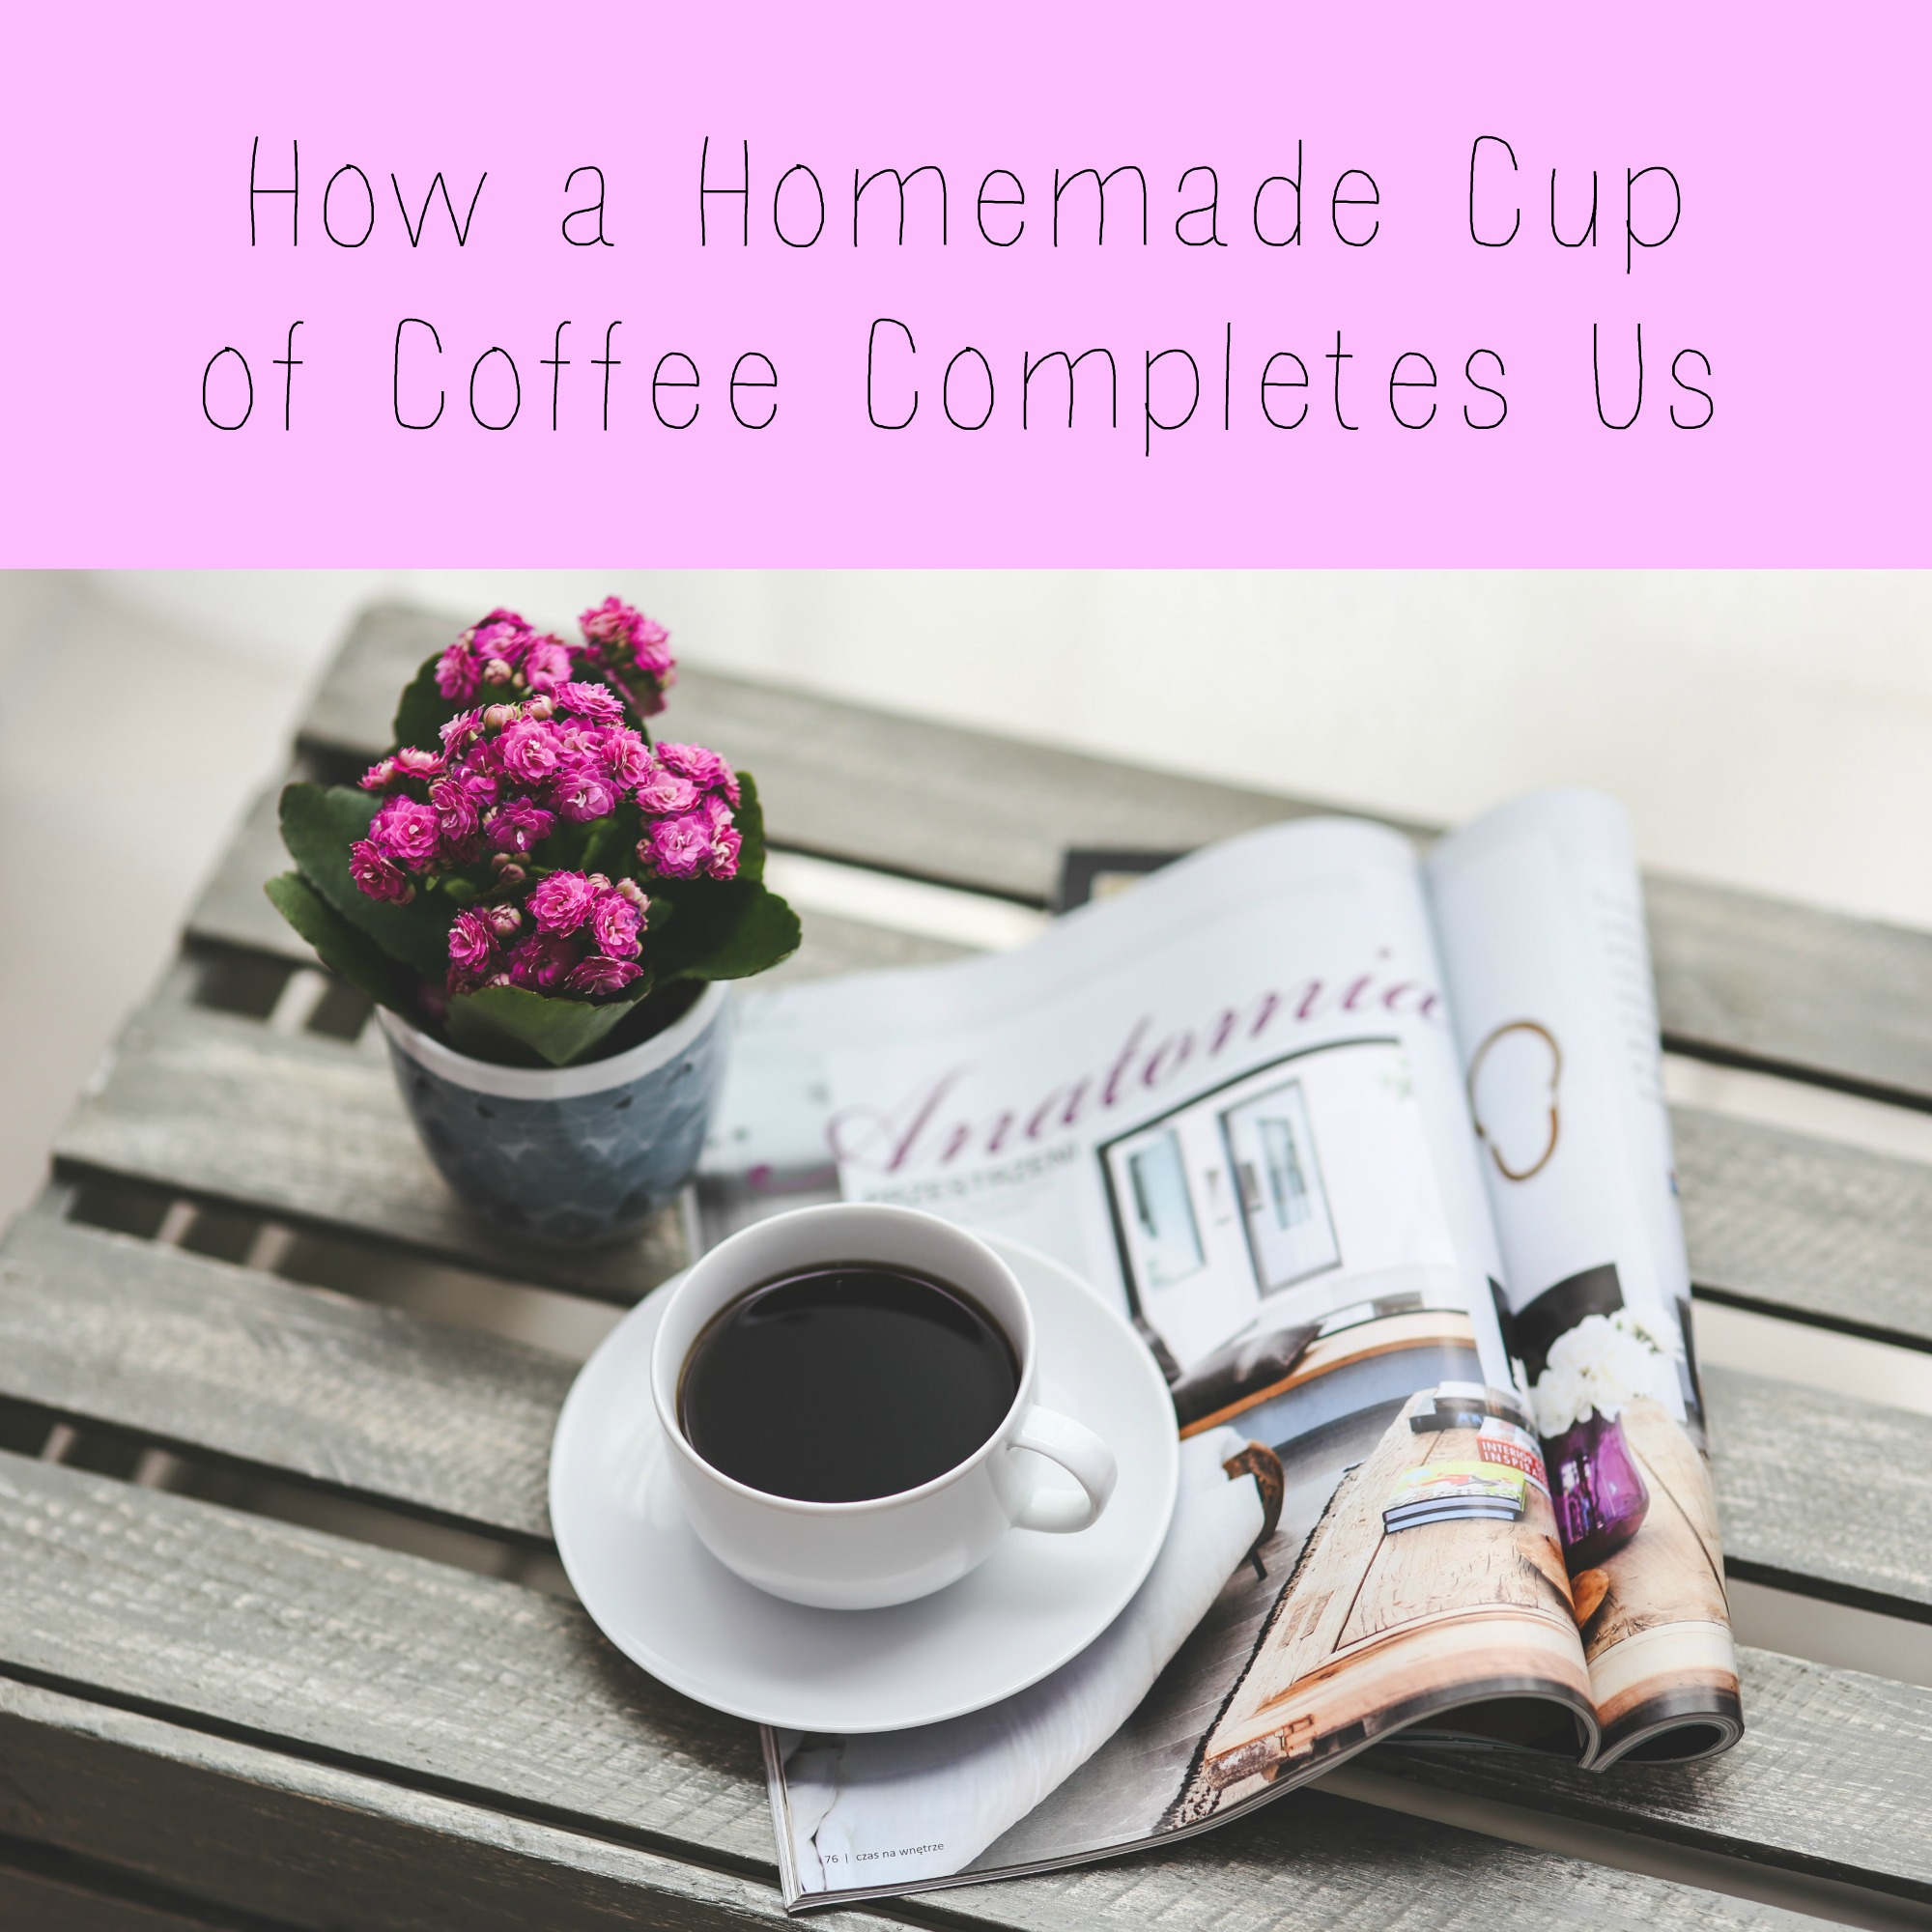 How a Homemade Cup of Coffee Completes Us